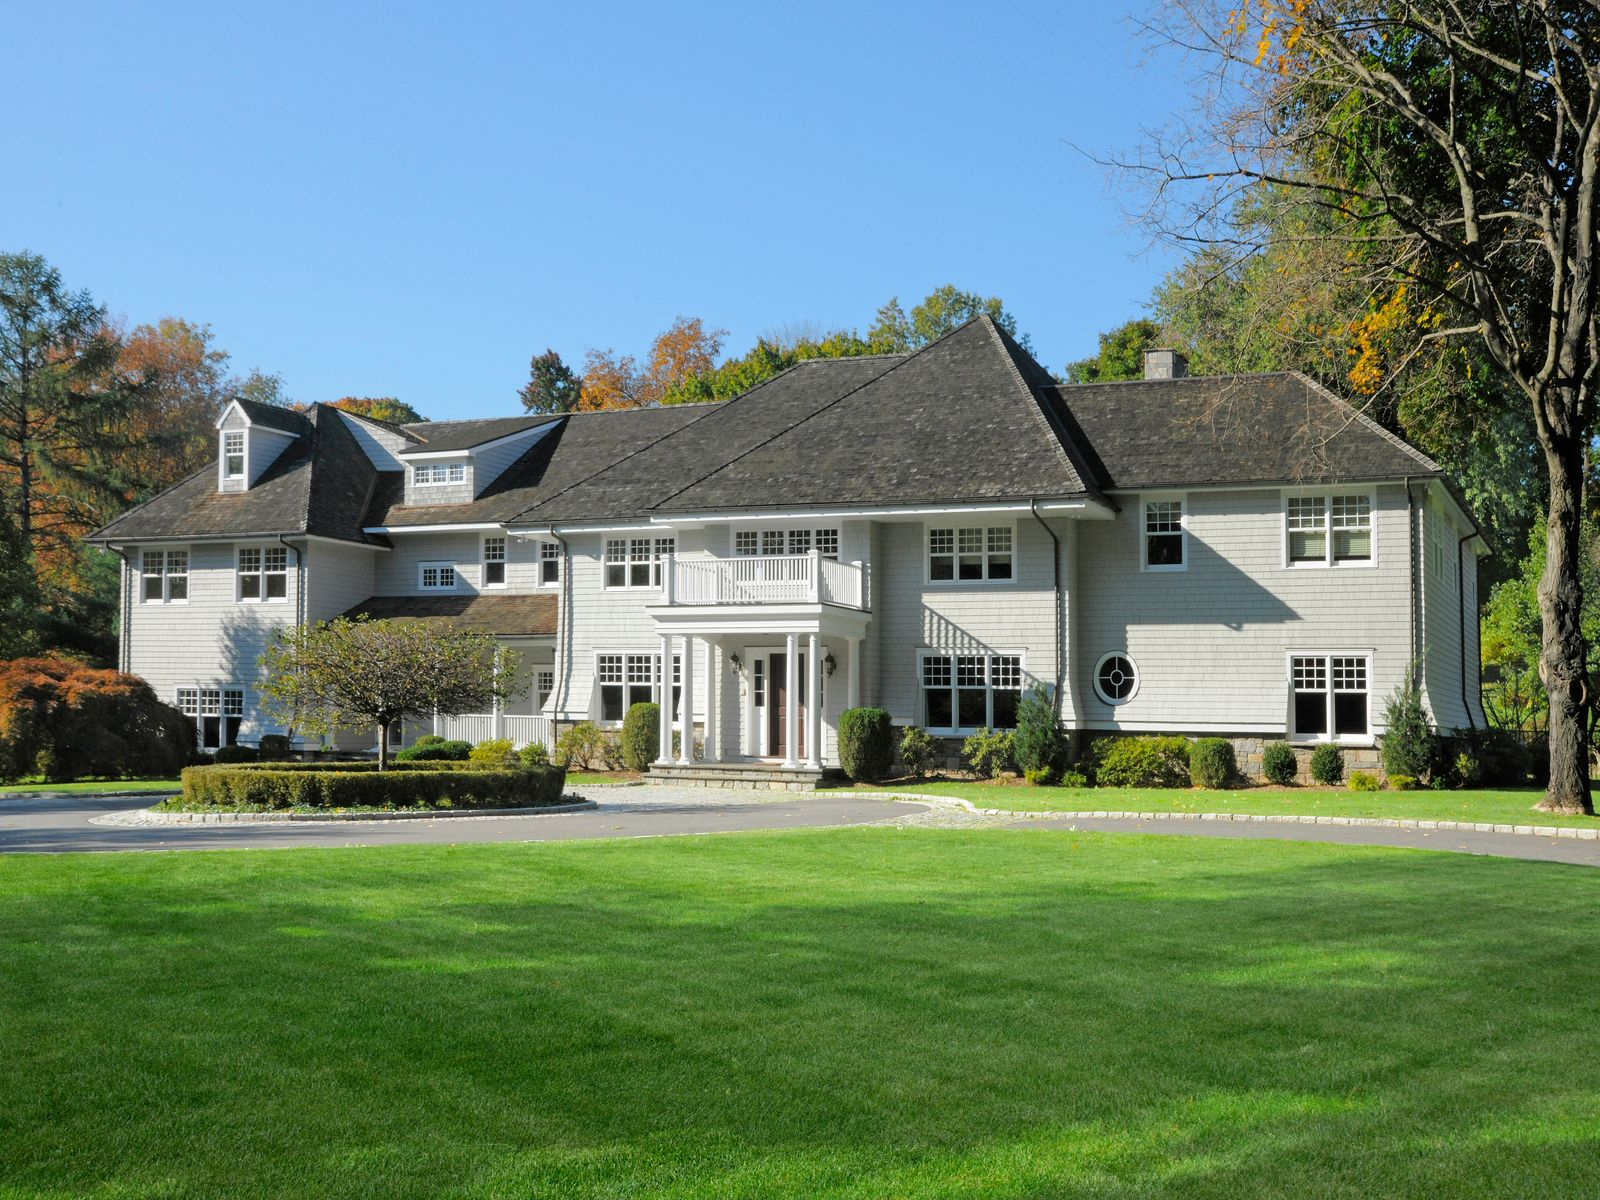 Country Classic, Greenwich CT Single Family Home - Greenwich Real Estate